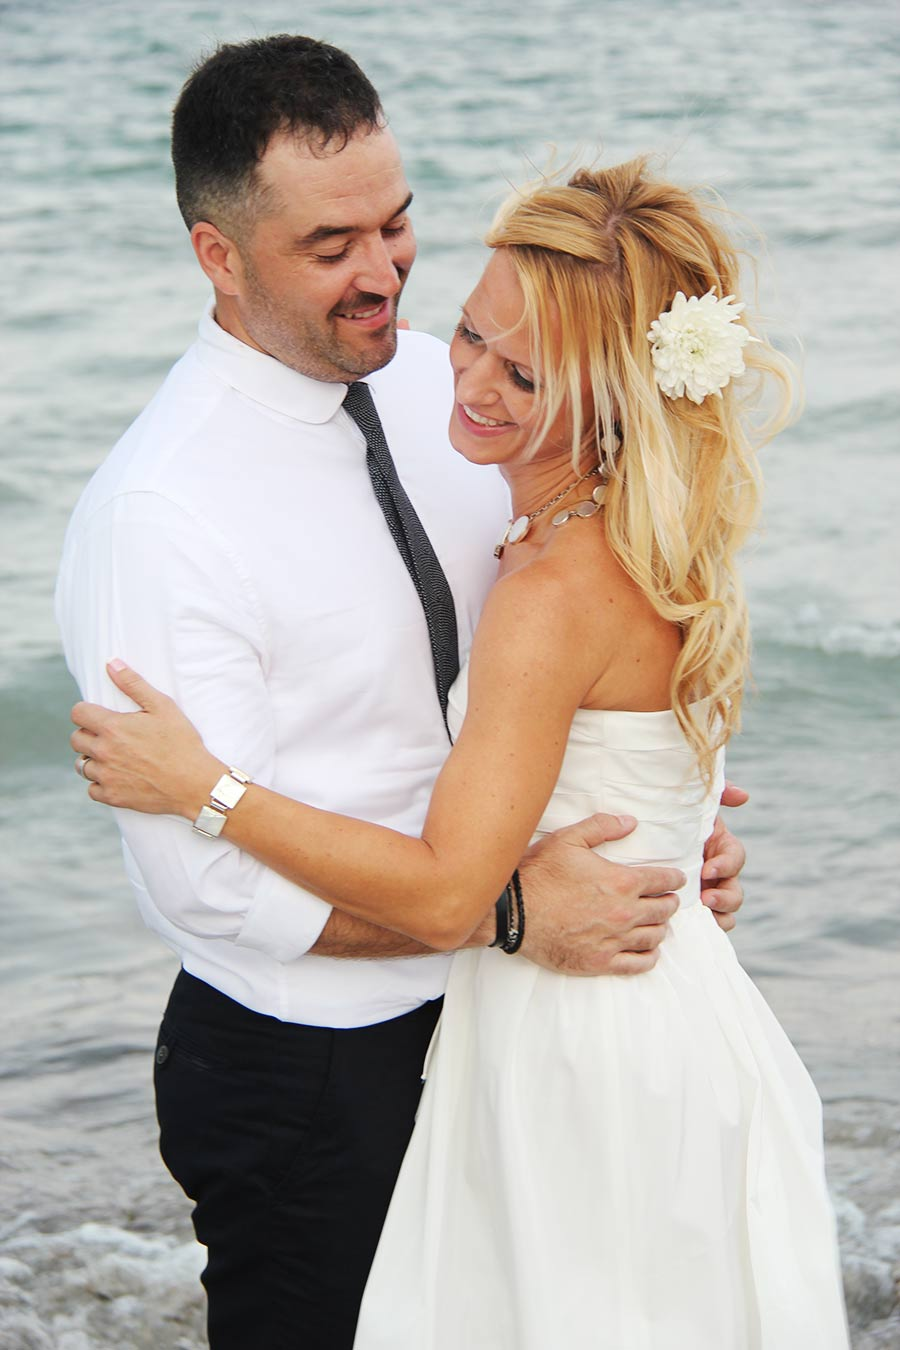 Photos Intimate Miami Beach Weddings Small Affordable